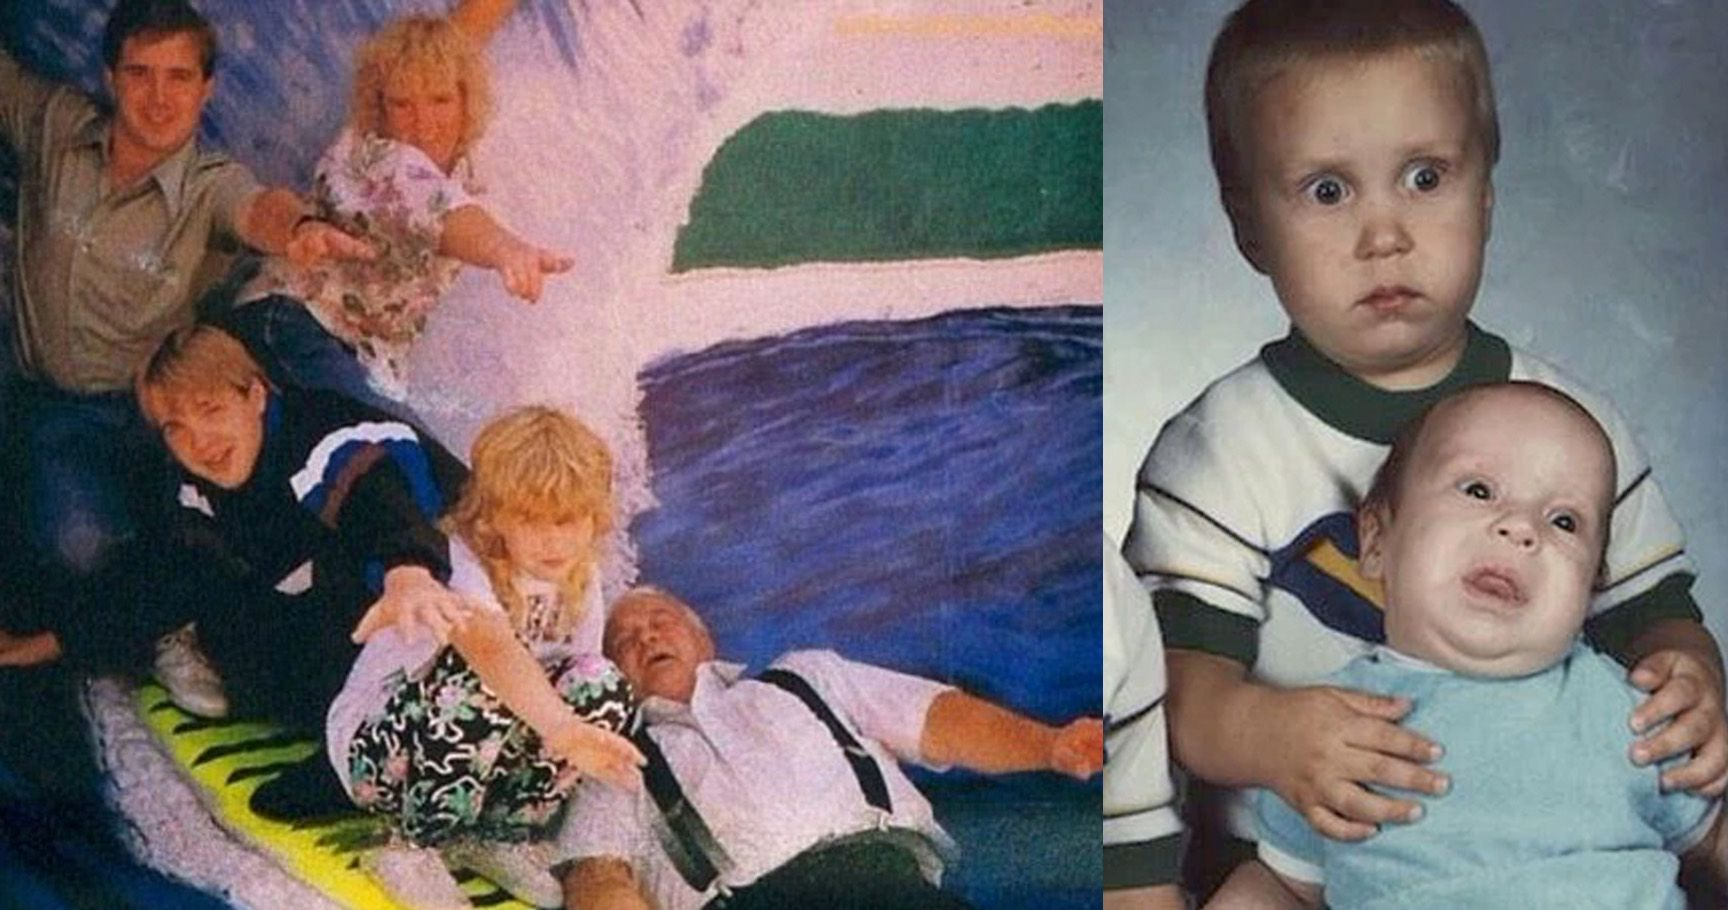 15 Awful Family Photos That Should Have NEVER Been Shared